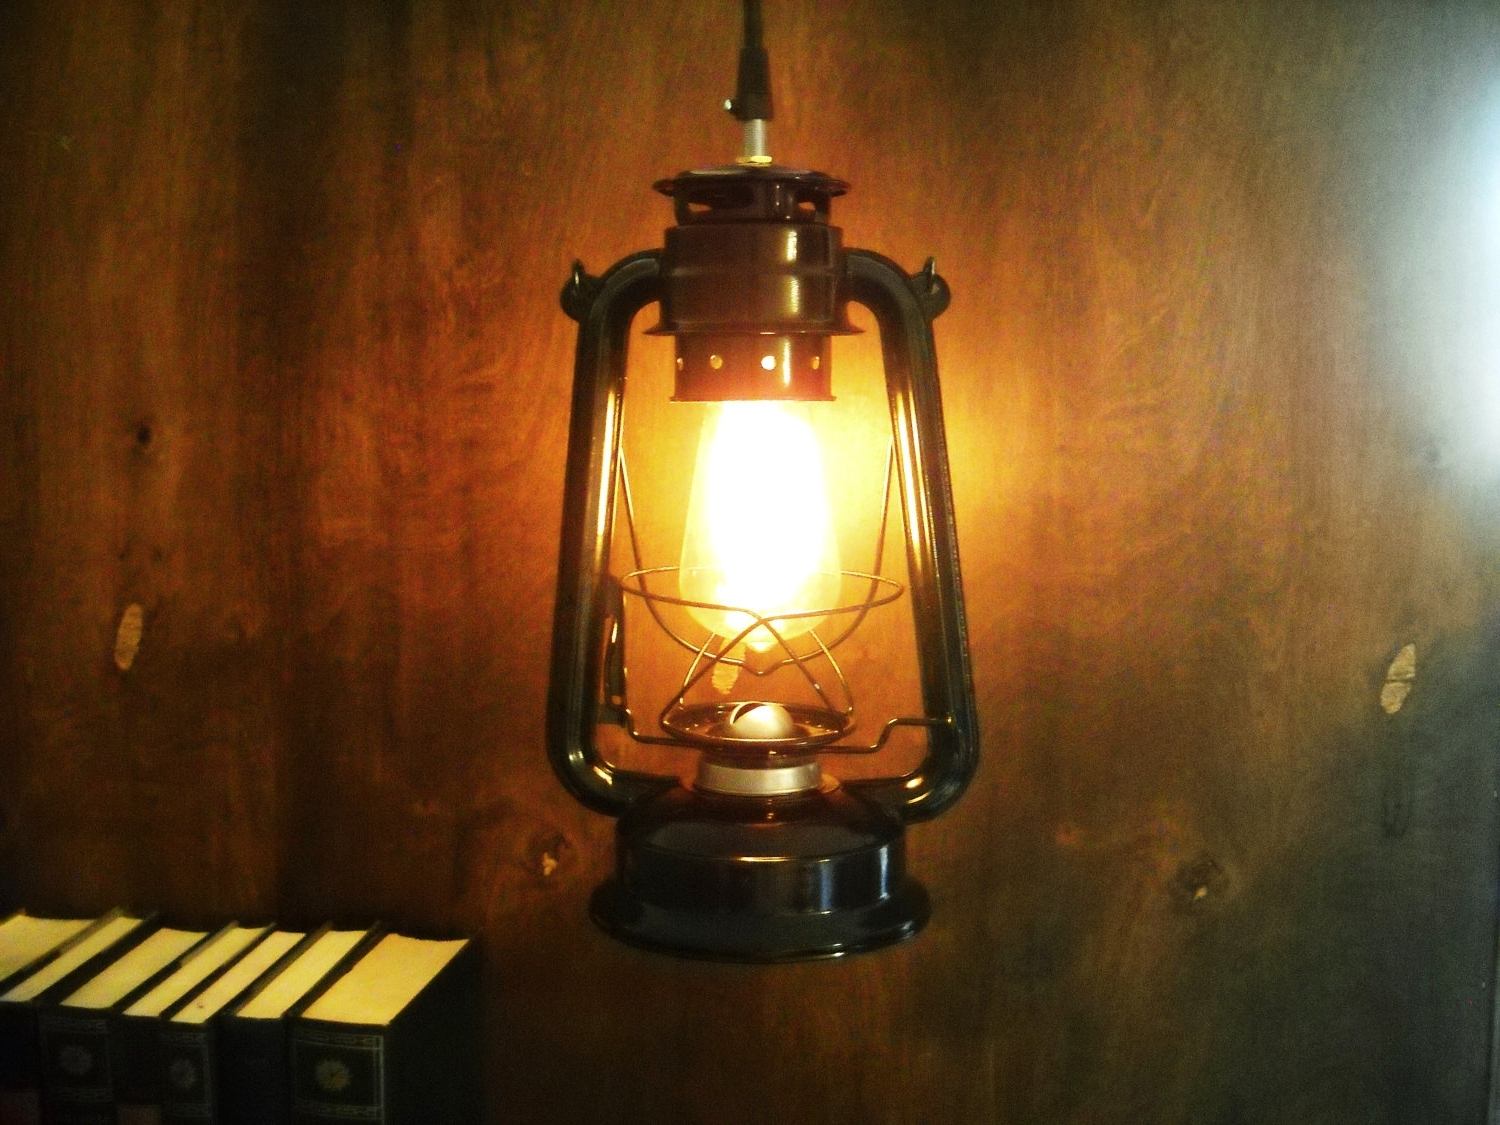 Outdoor Electric Lanterns Within 2019 Electric Lantern Lights — Awesome House Lighting : Feeling Of Warmth (View 9 of 20)